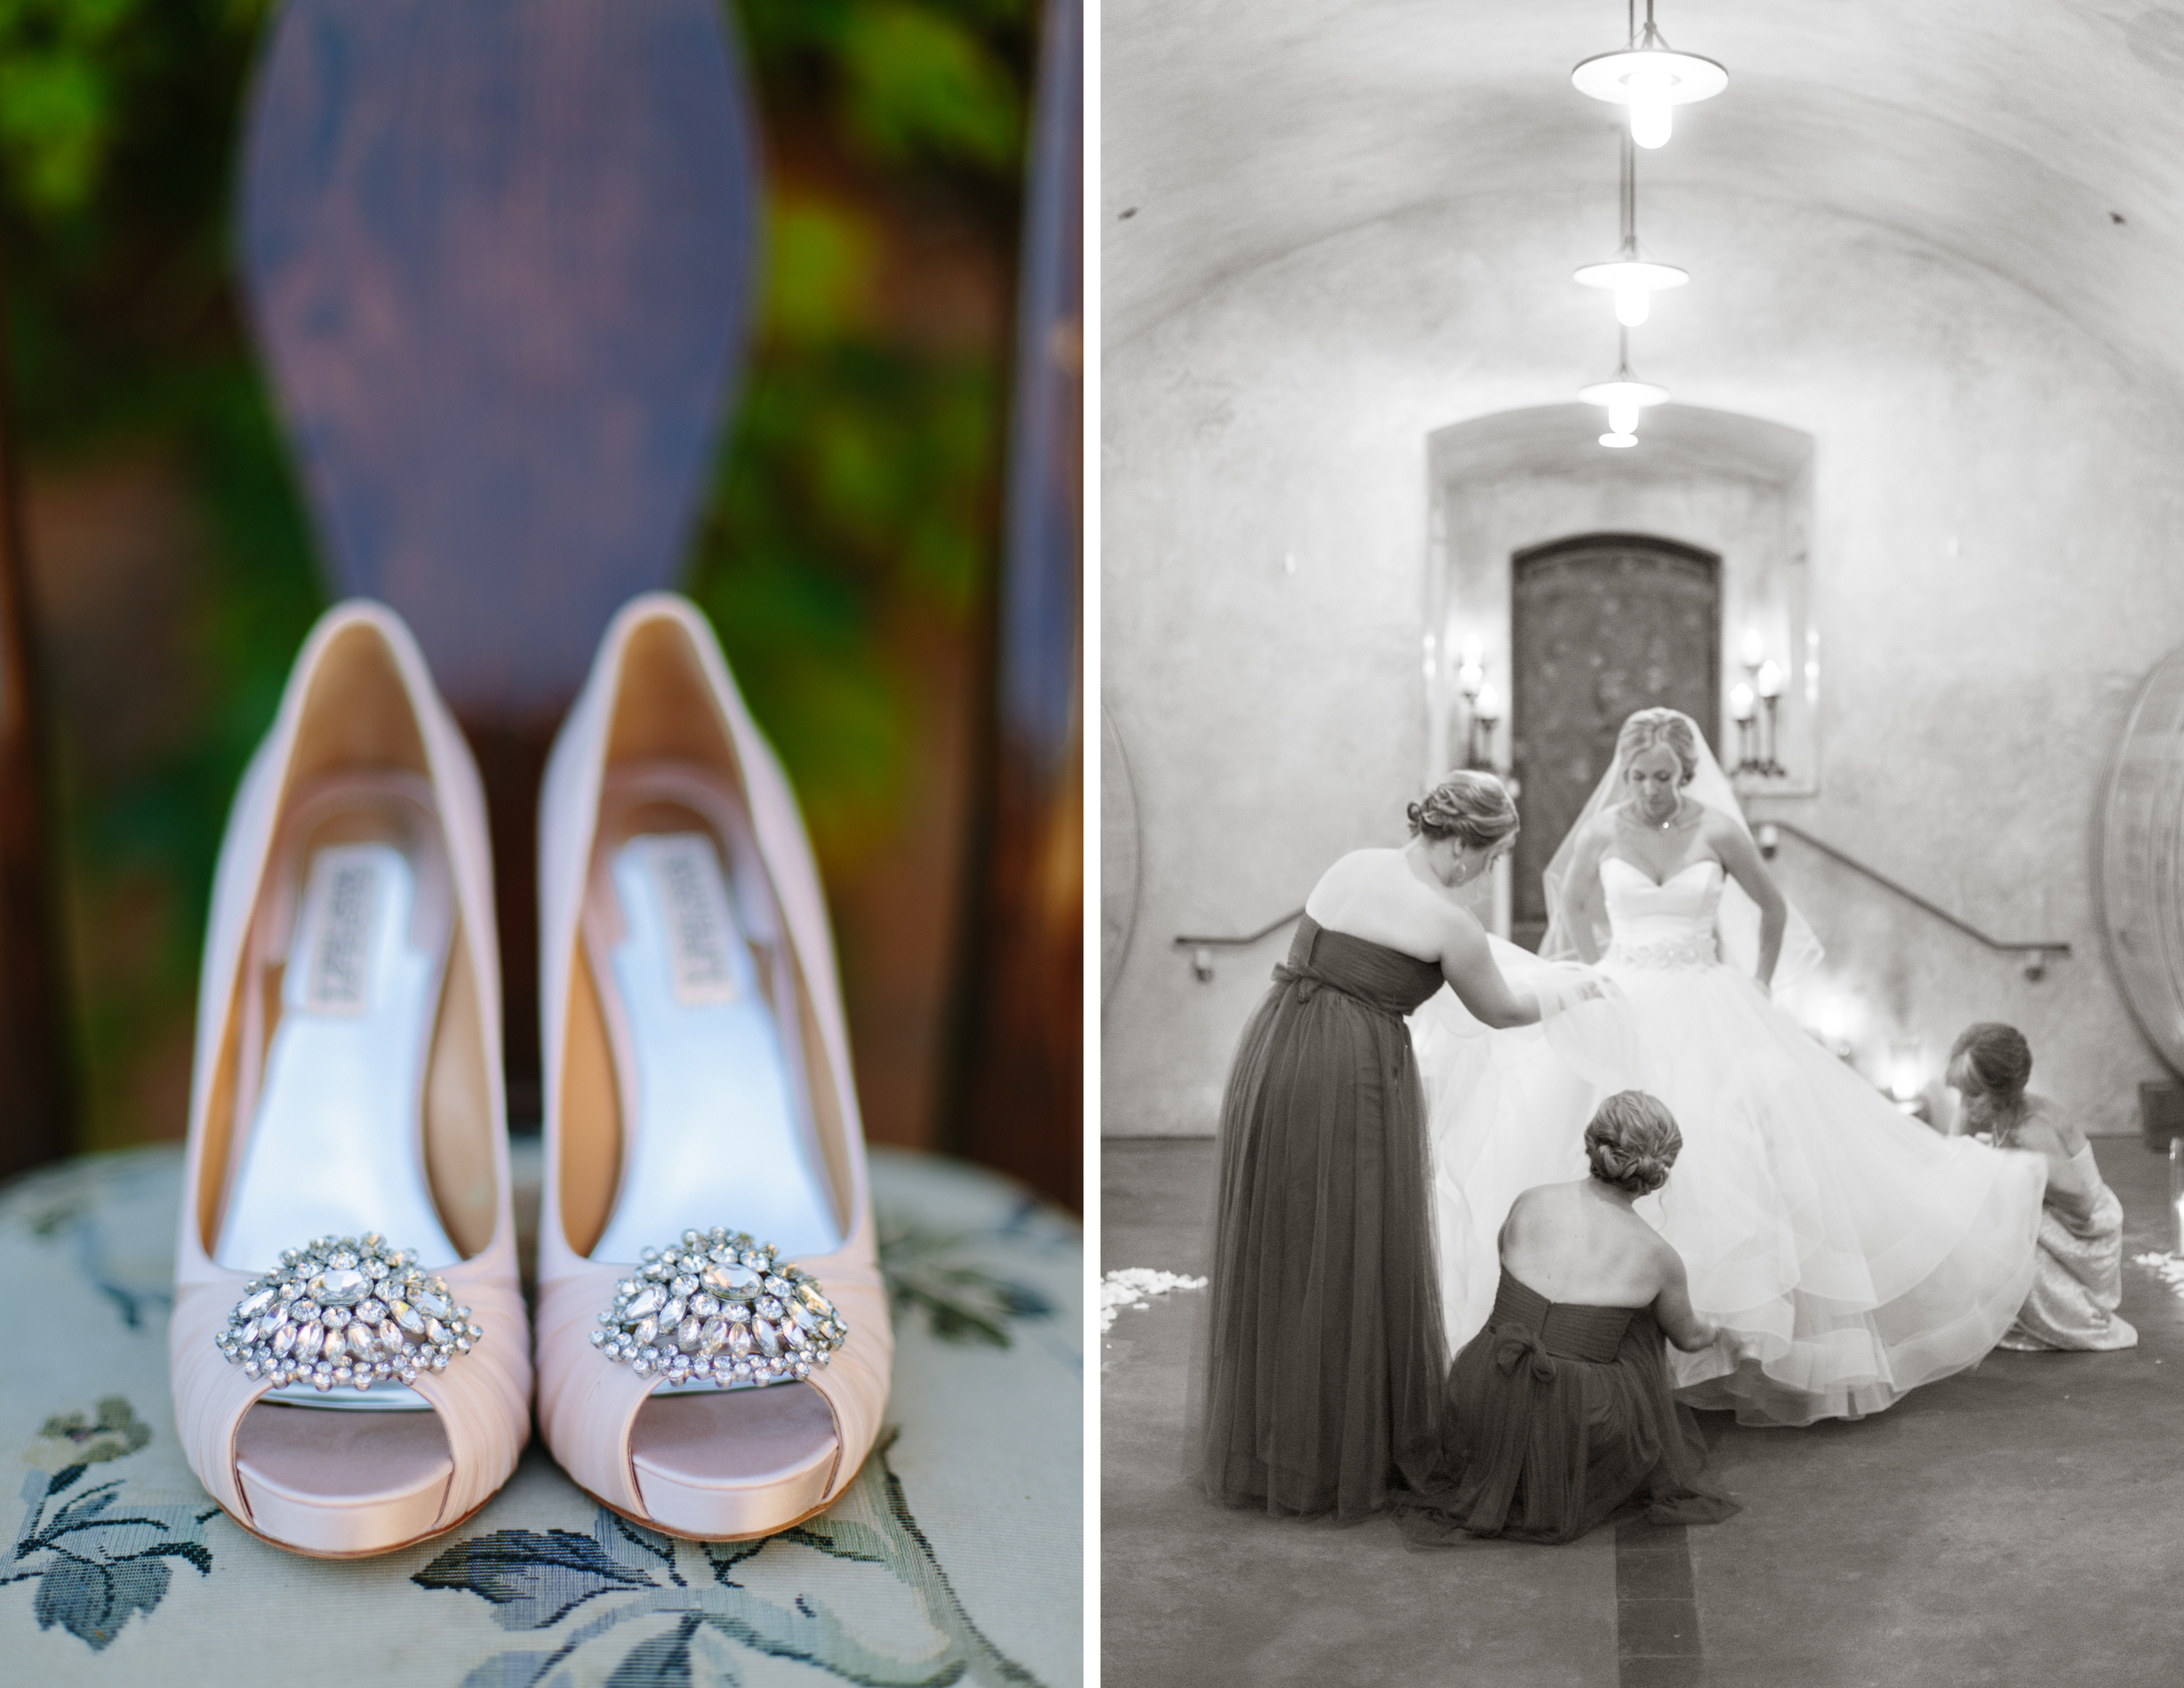 viansa winery wedding 2.jpg